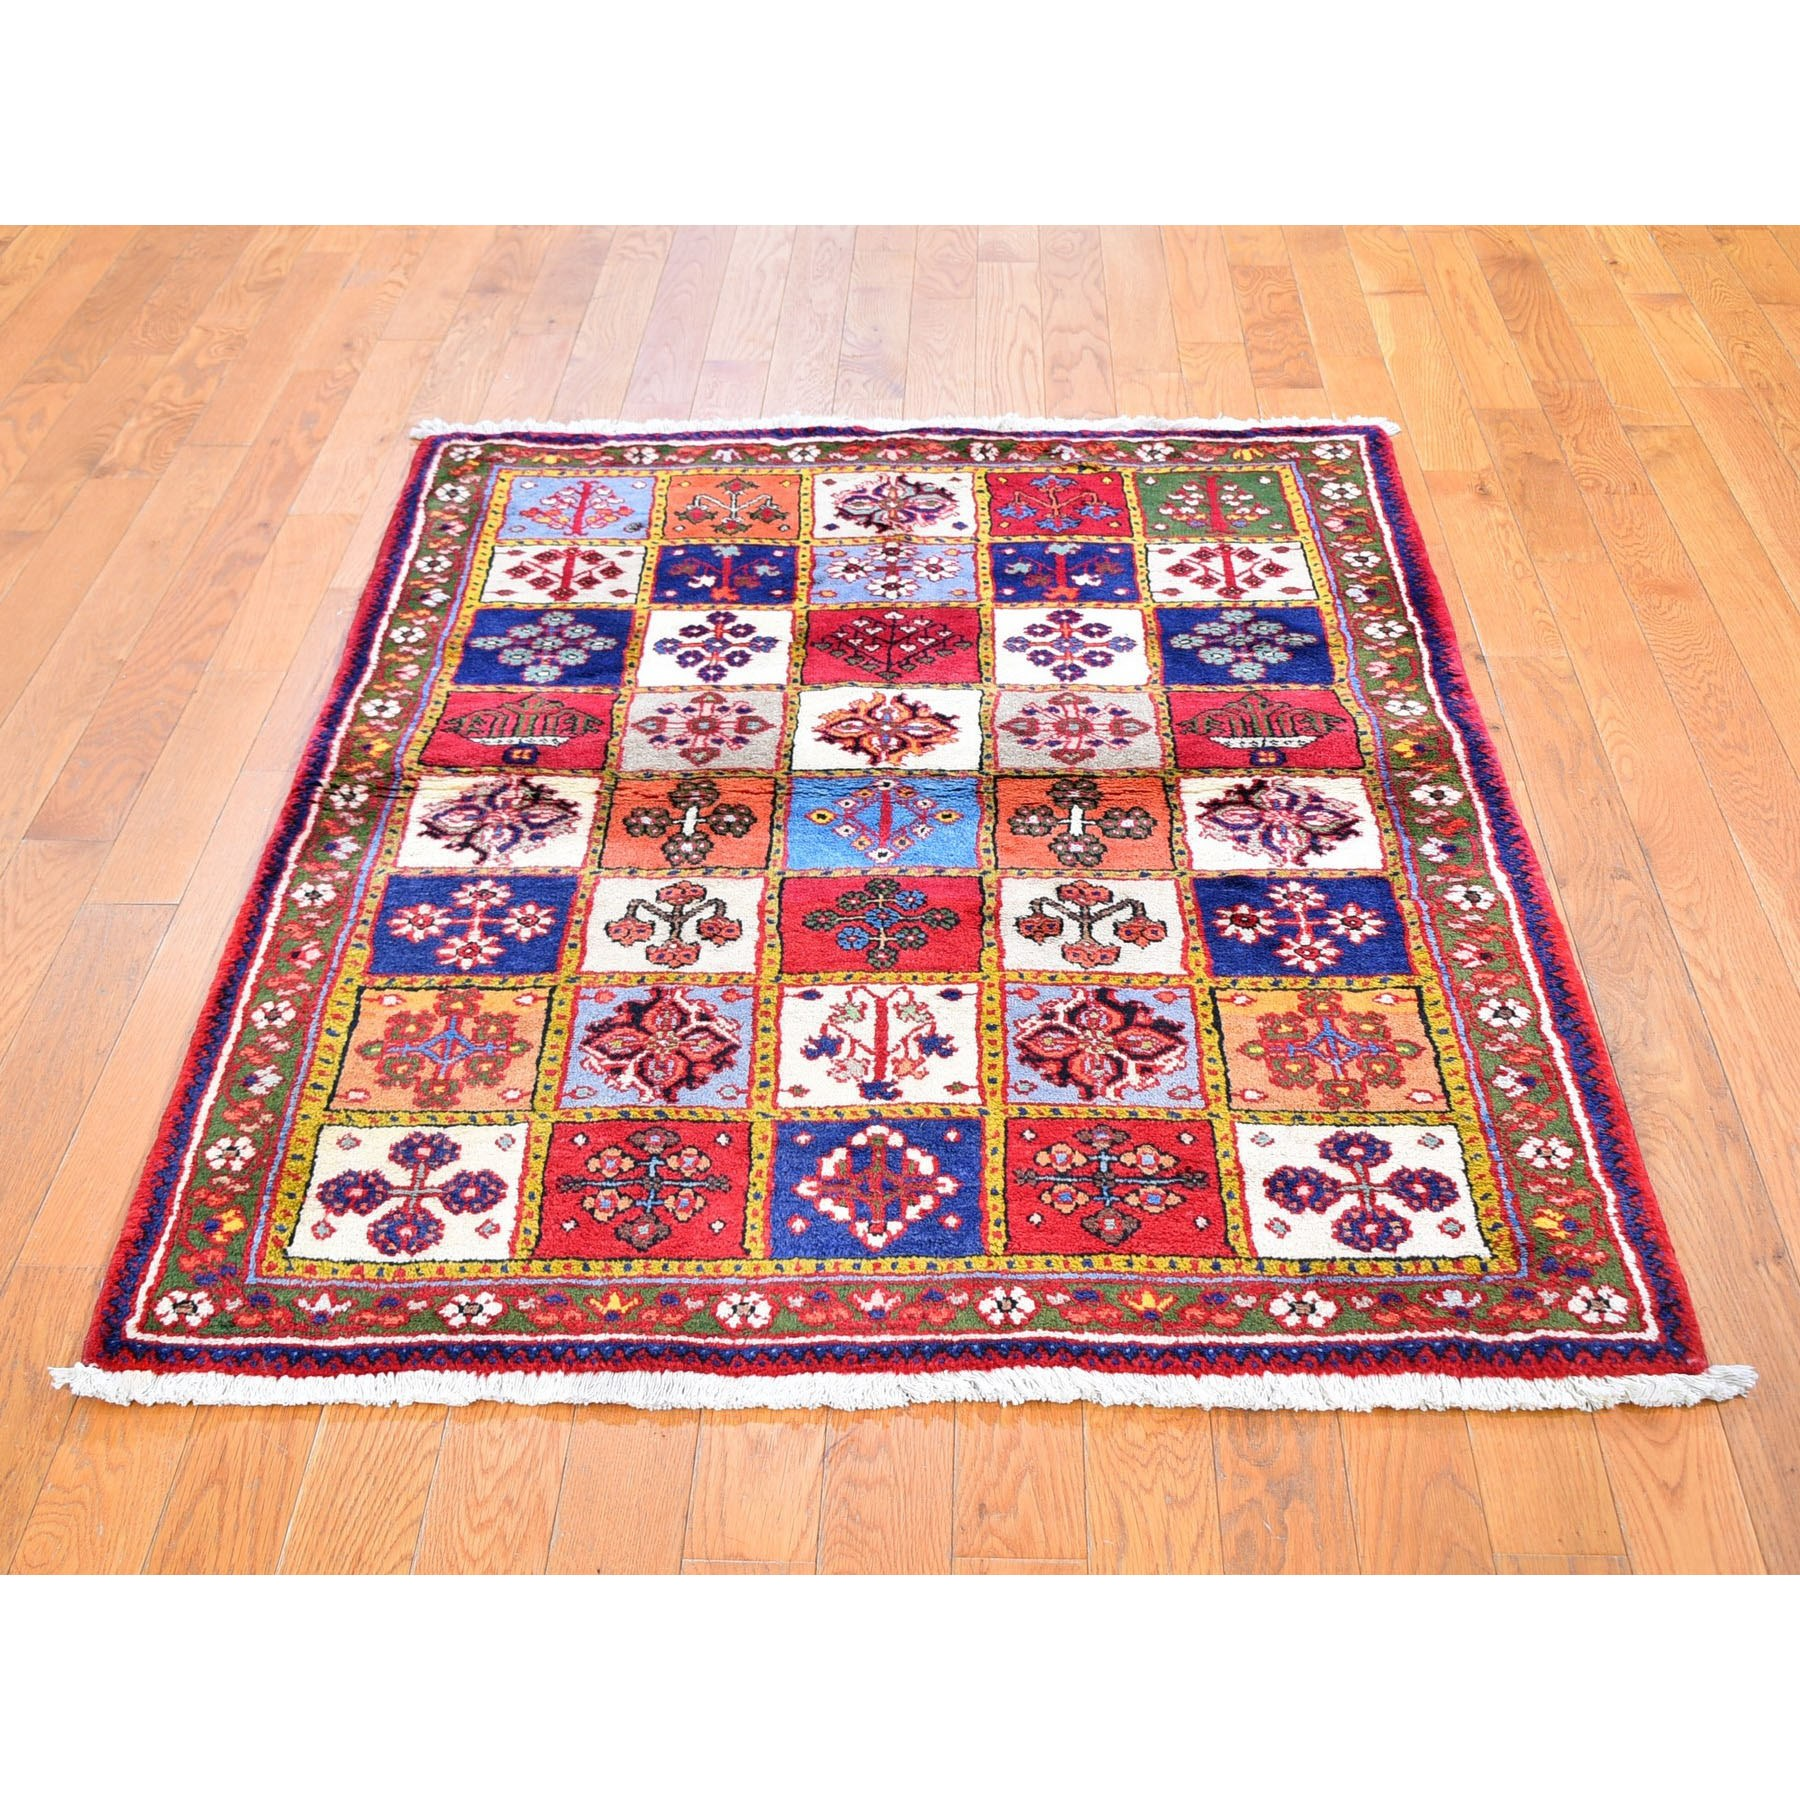 3 7 X5 2 Vintage Persian Tabriz Colorful Garden Design Hand Knotted Pure Wool Oriental Rug